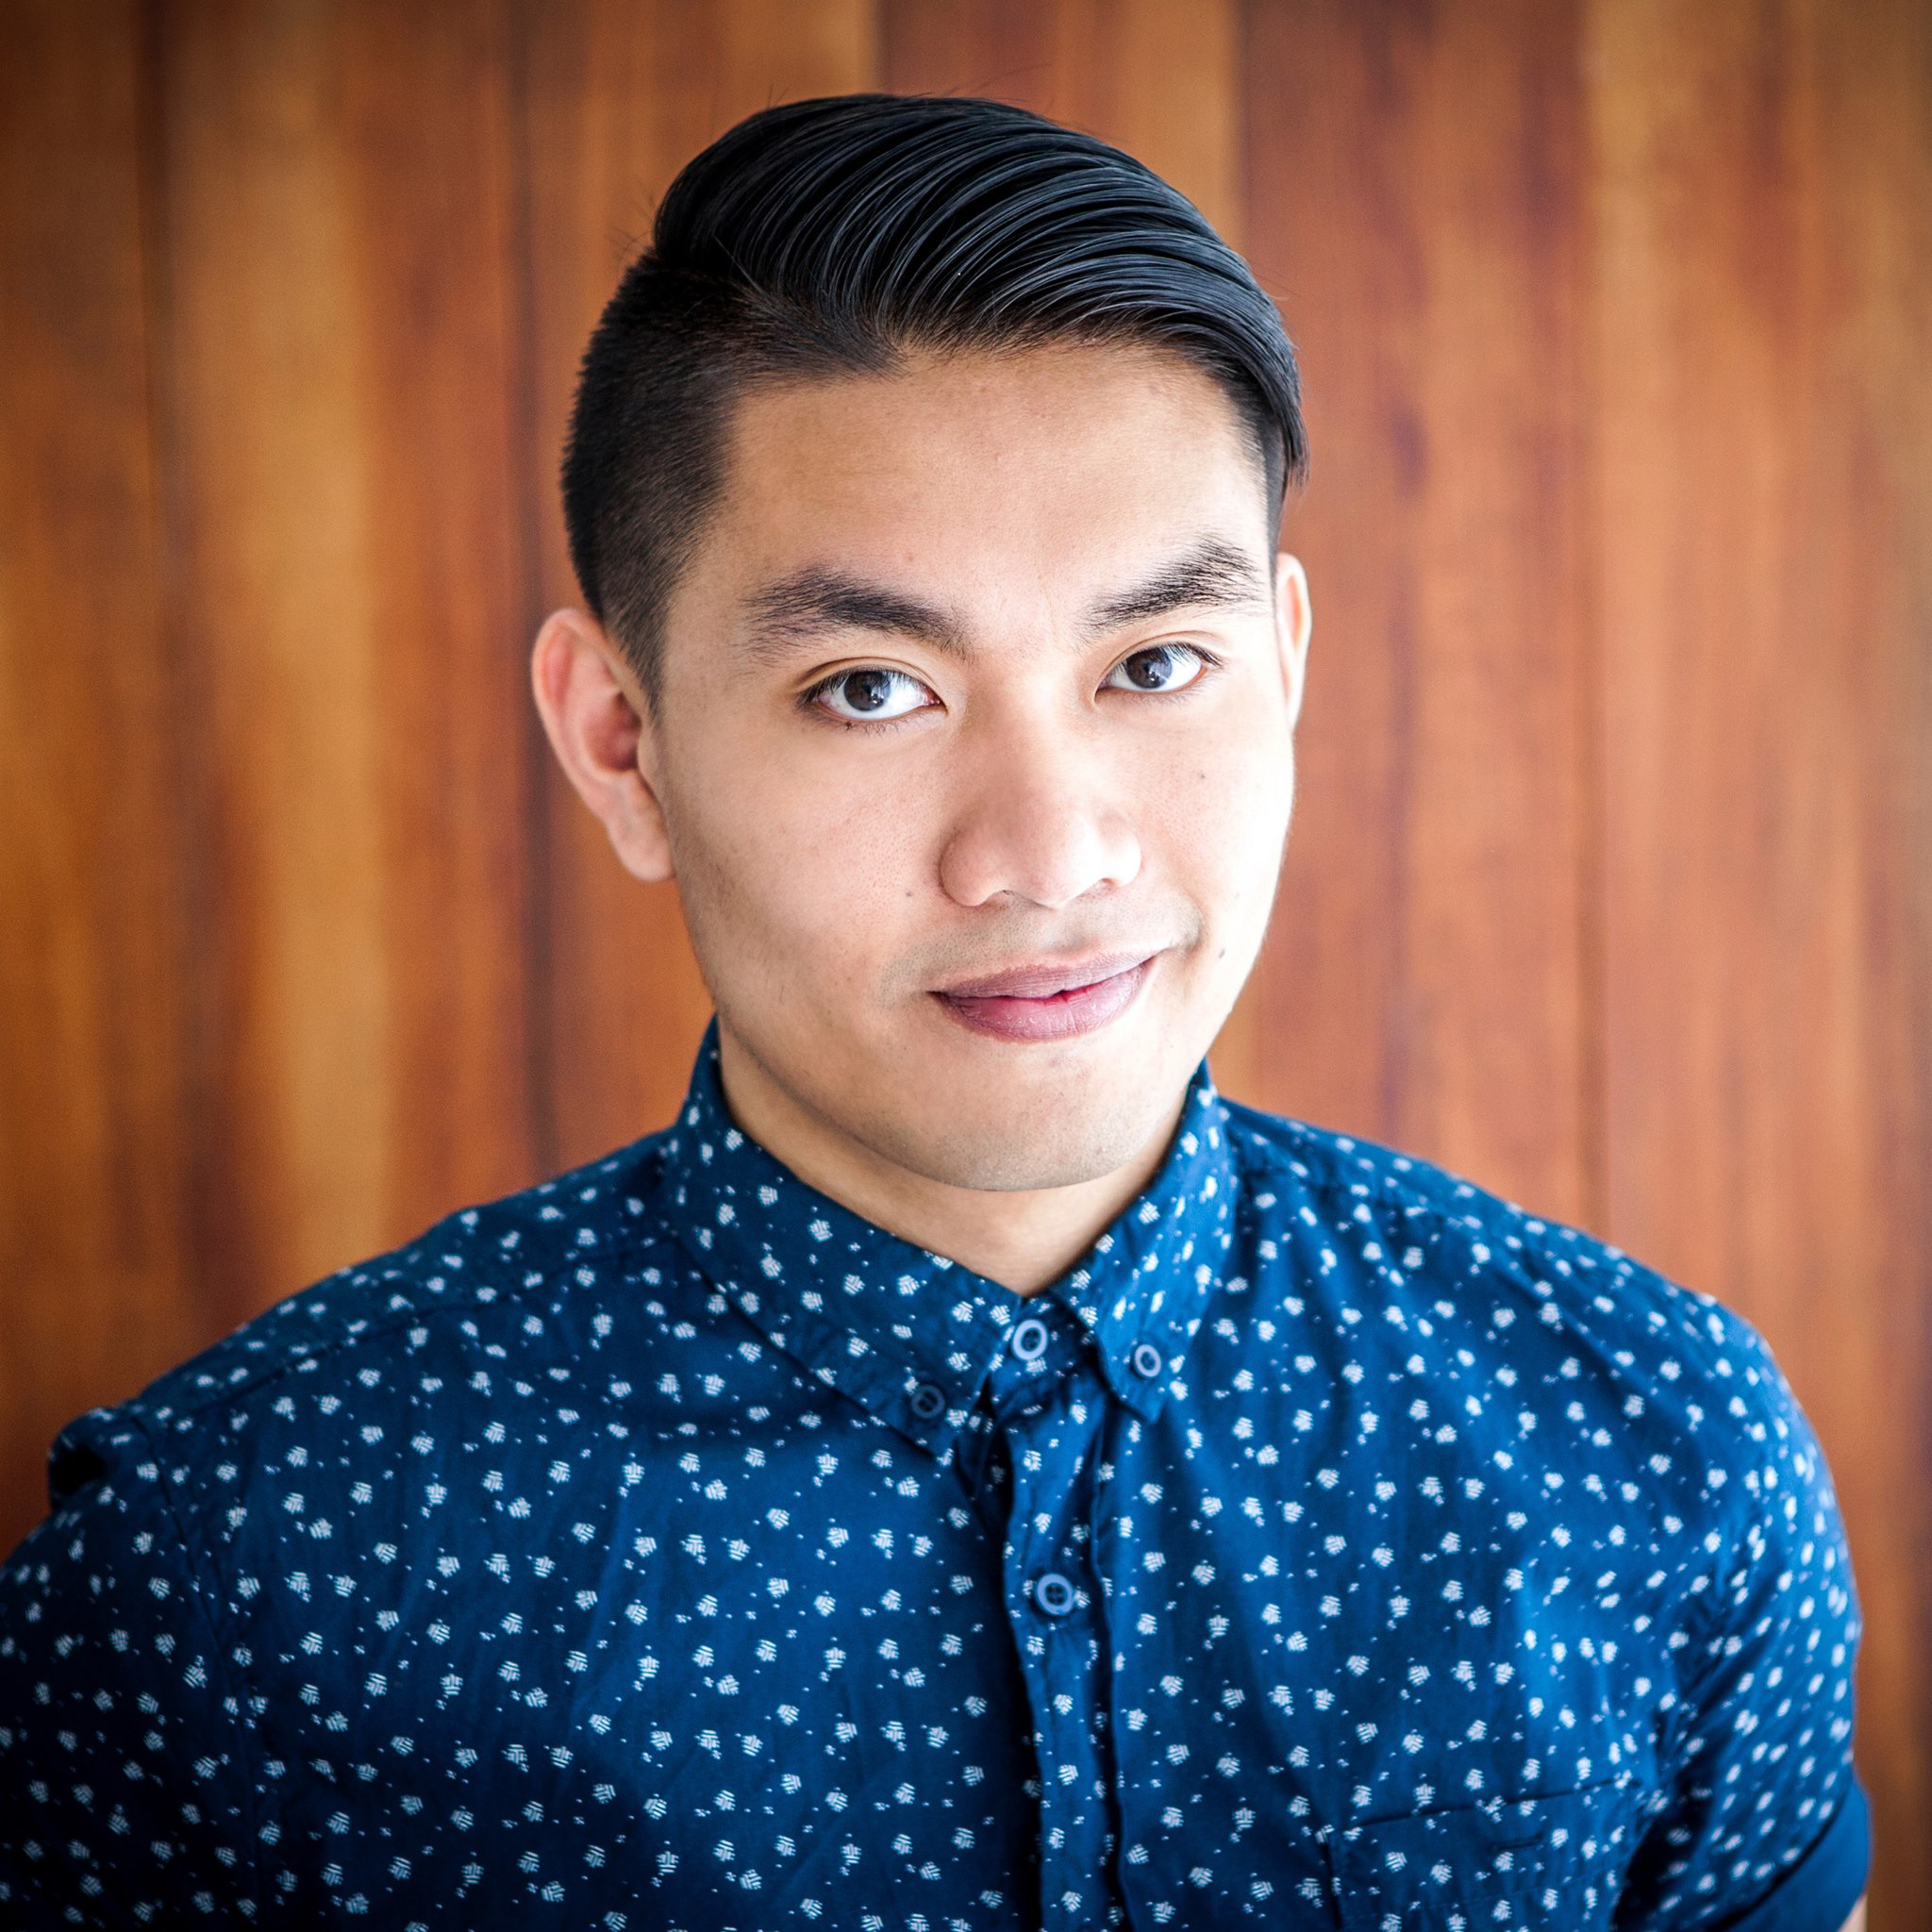 """F Ked Him In Lagos Ph: James Roque Refuses To Be Anyone's """"Good Asian"""" Anymore"""